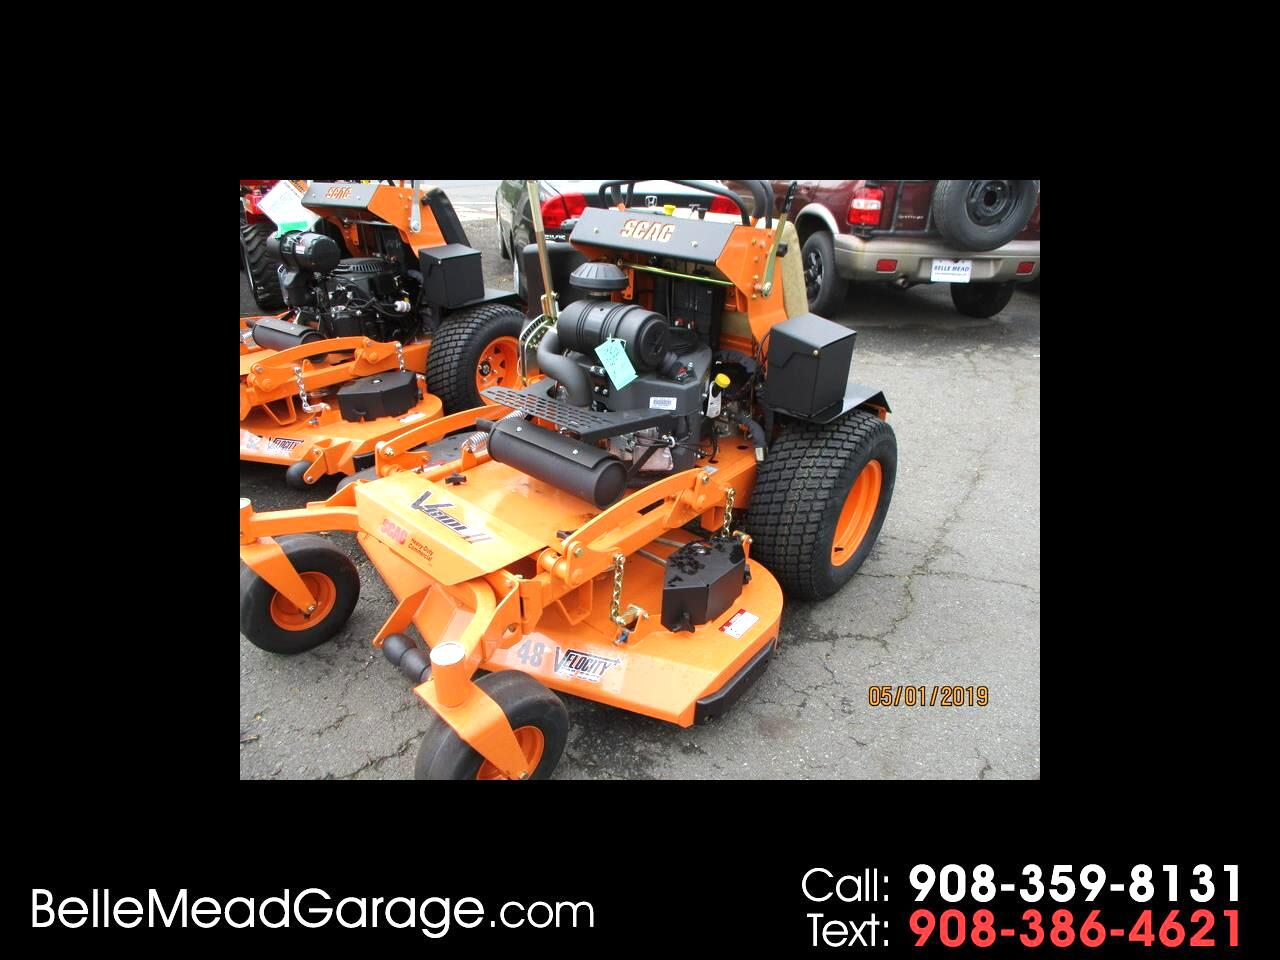 2019 SCAG Mower V-RIDE 48' WITH 22HP KAWASAKI